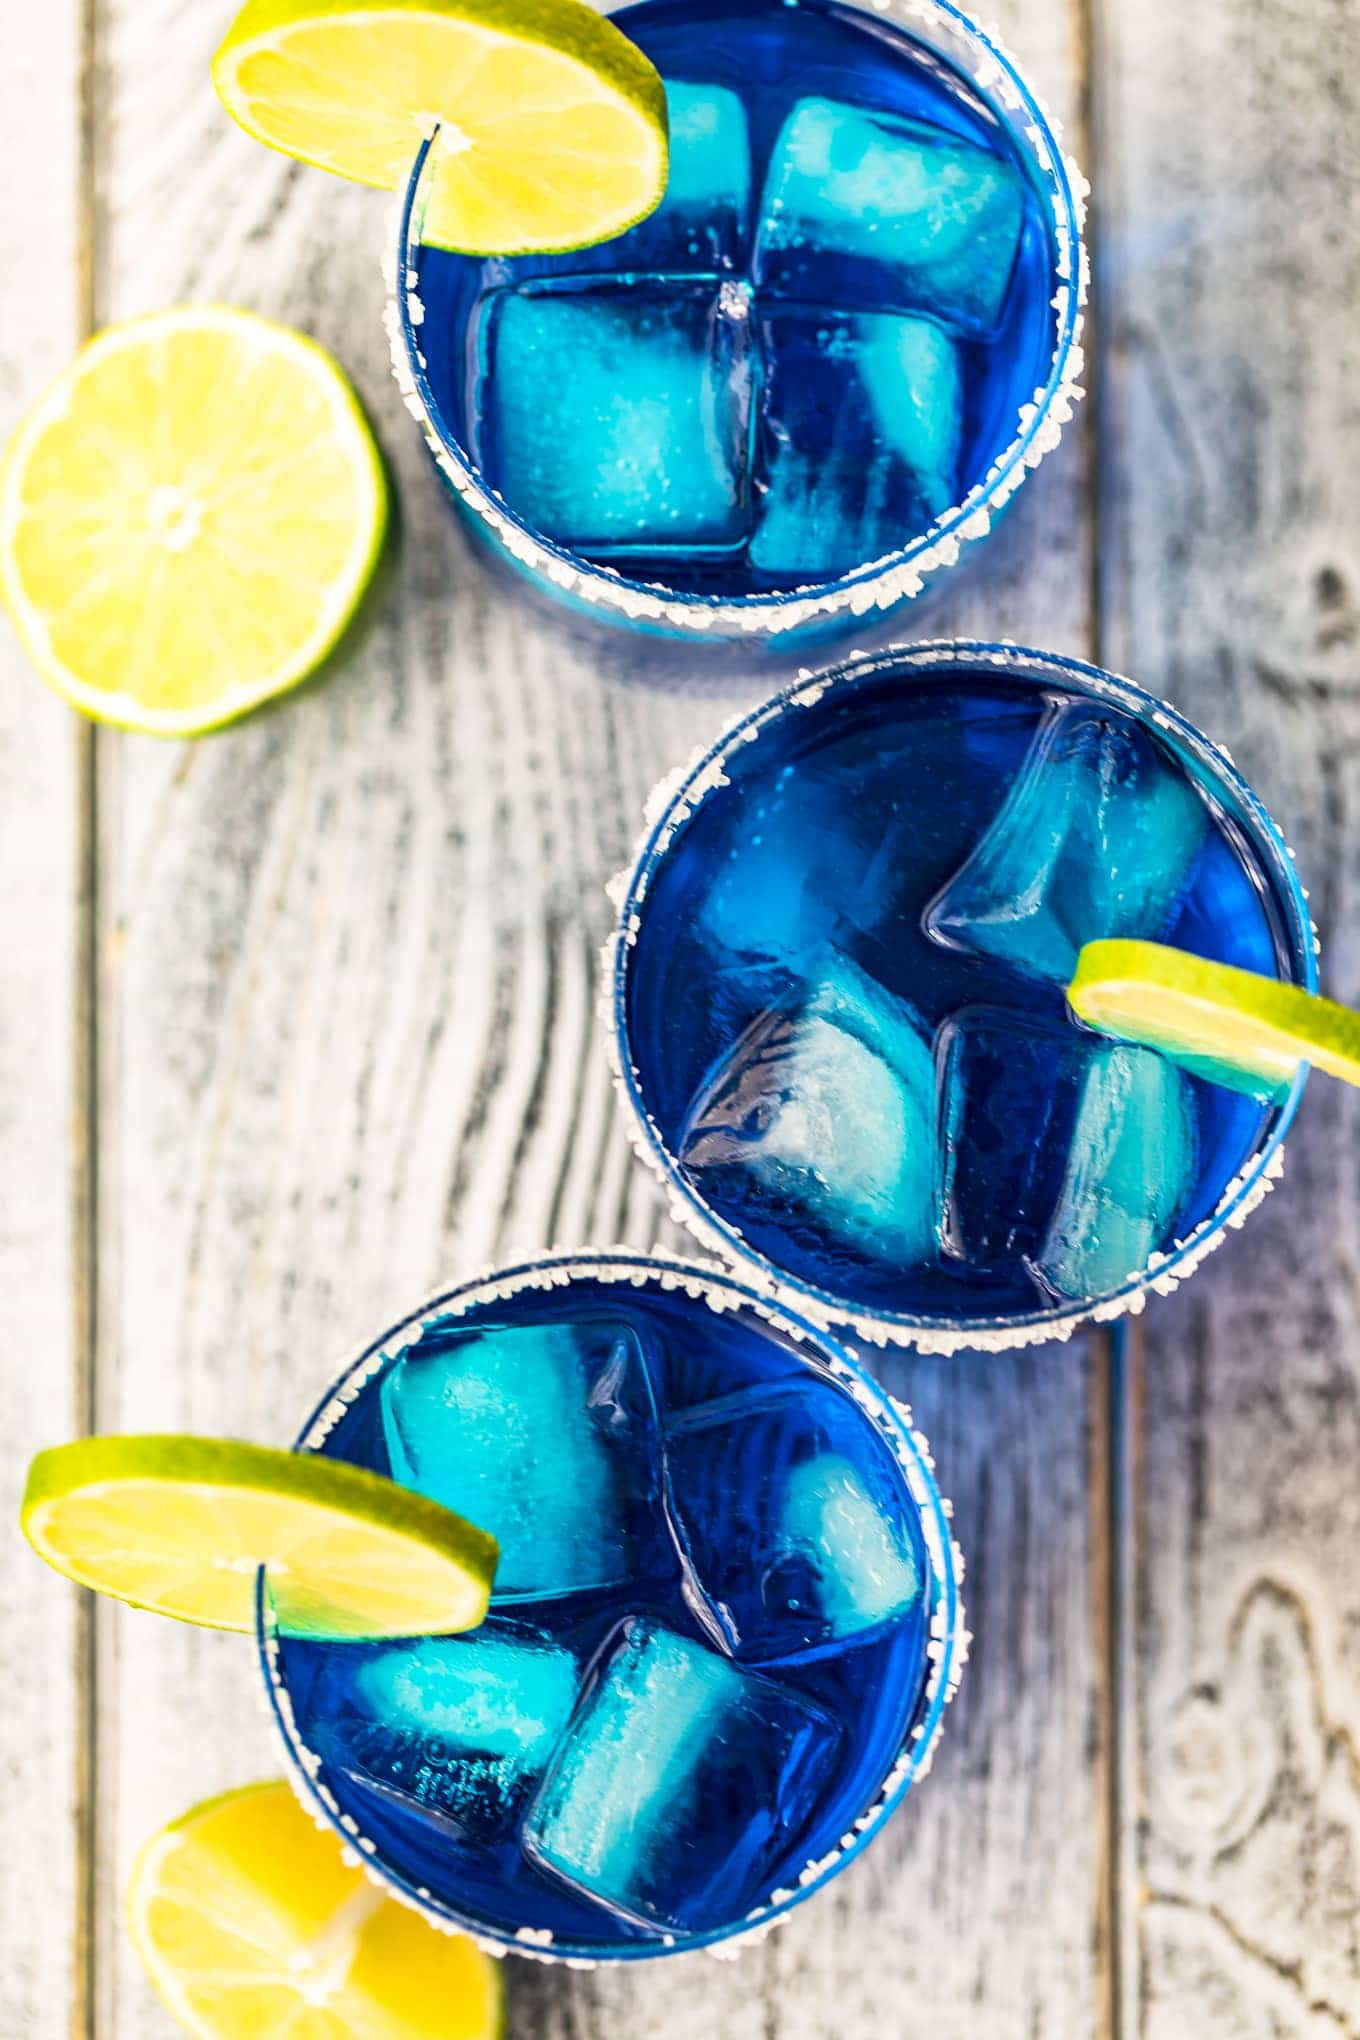 Top down shot of blue margaritas garnished with lime slices